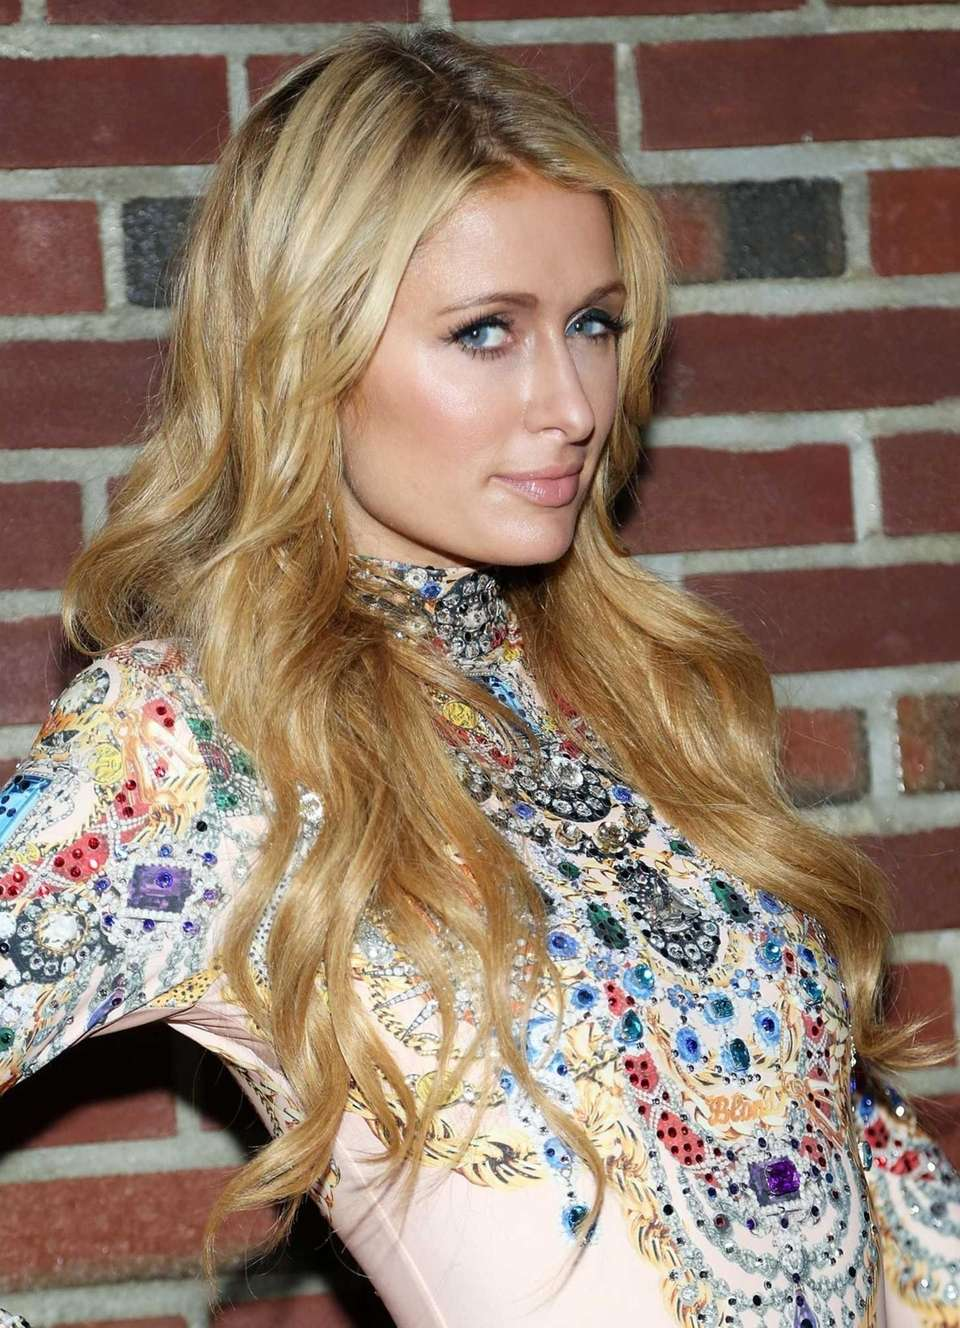 Paris Hilton poses for a photo backstage at